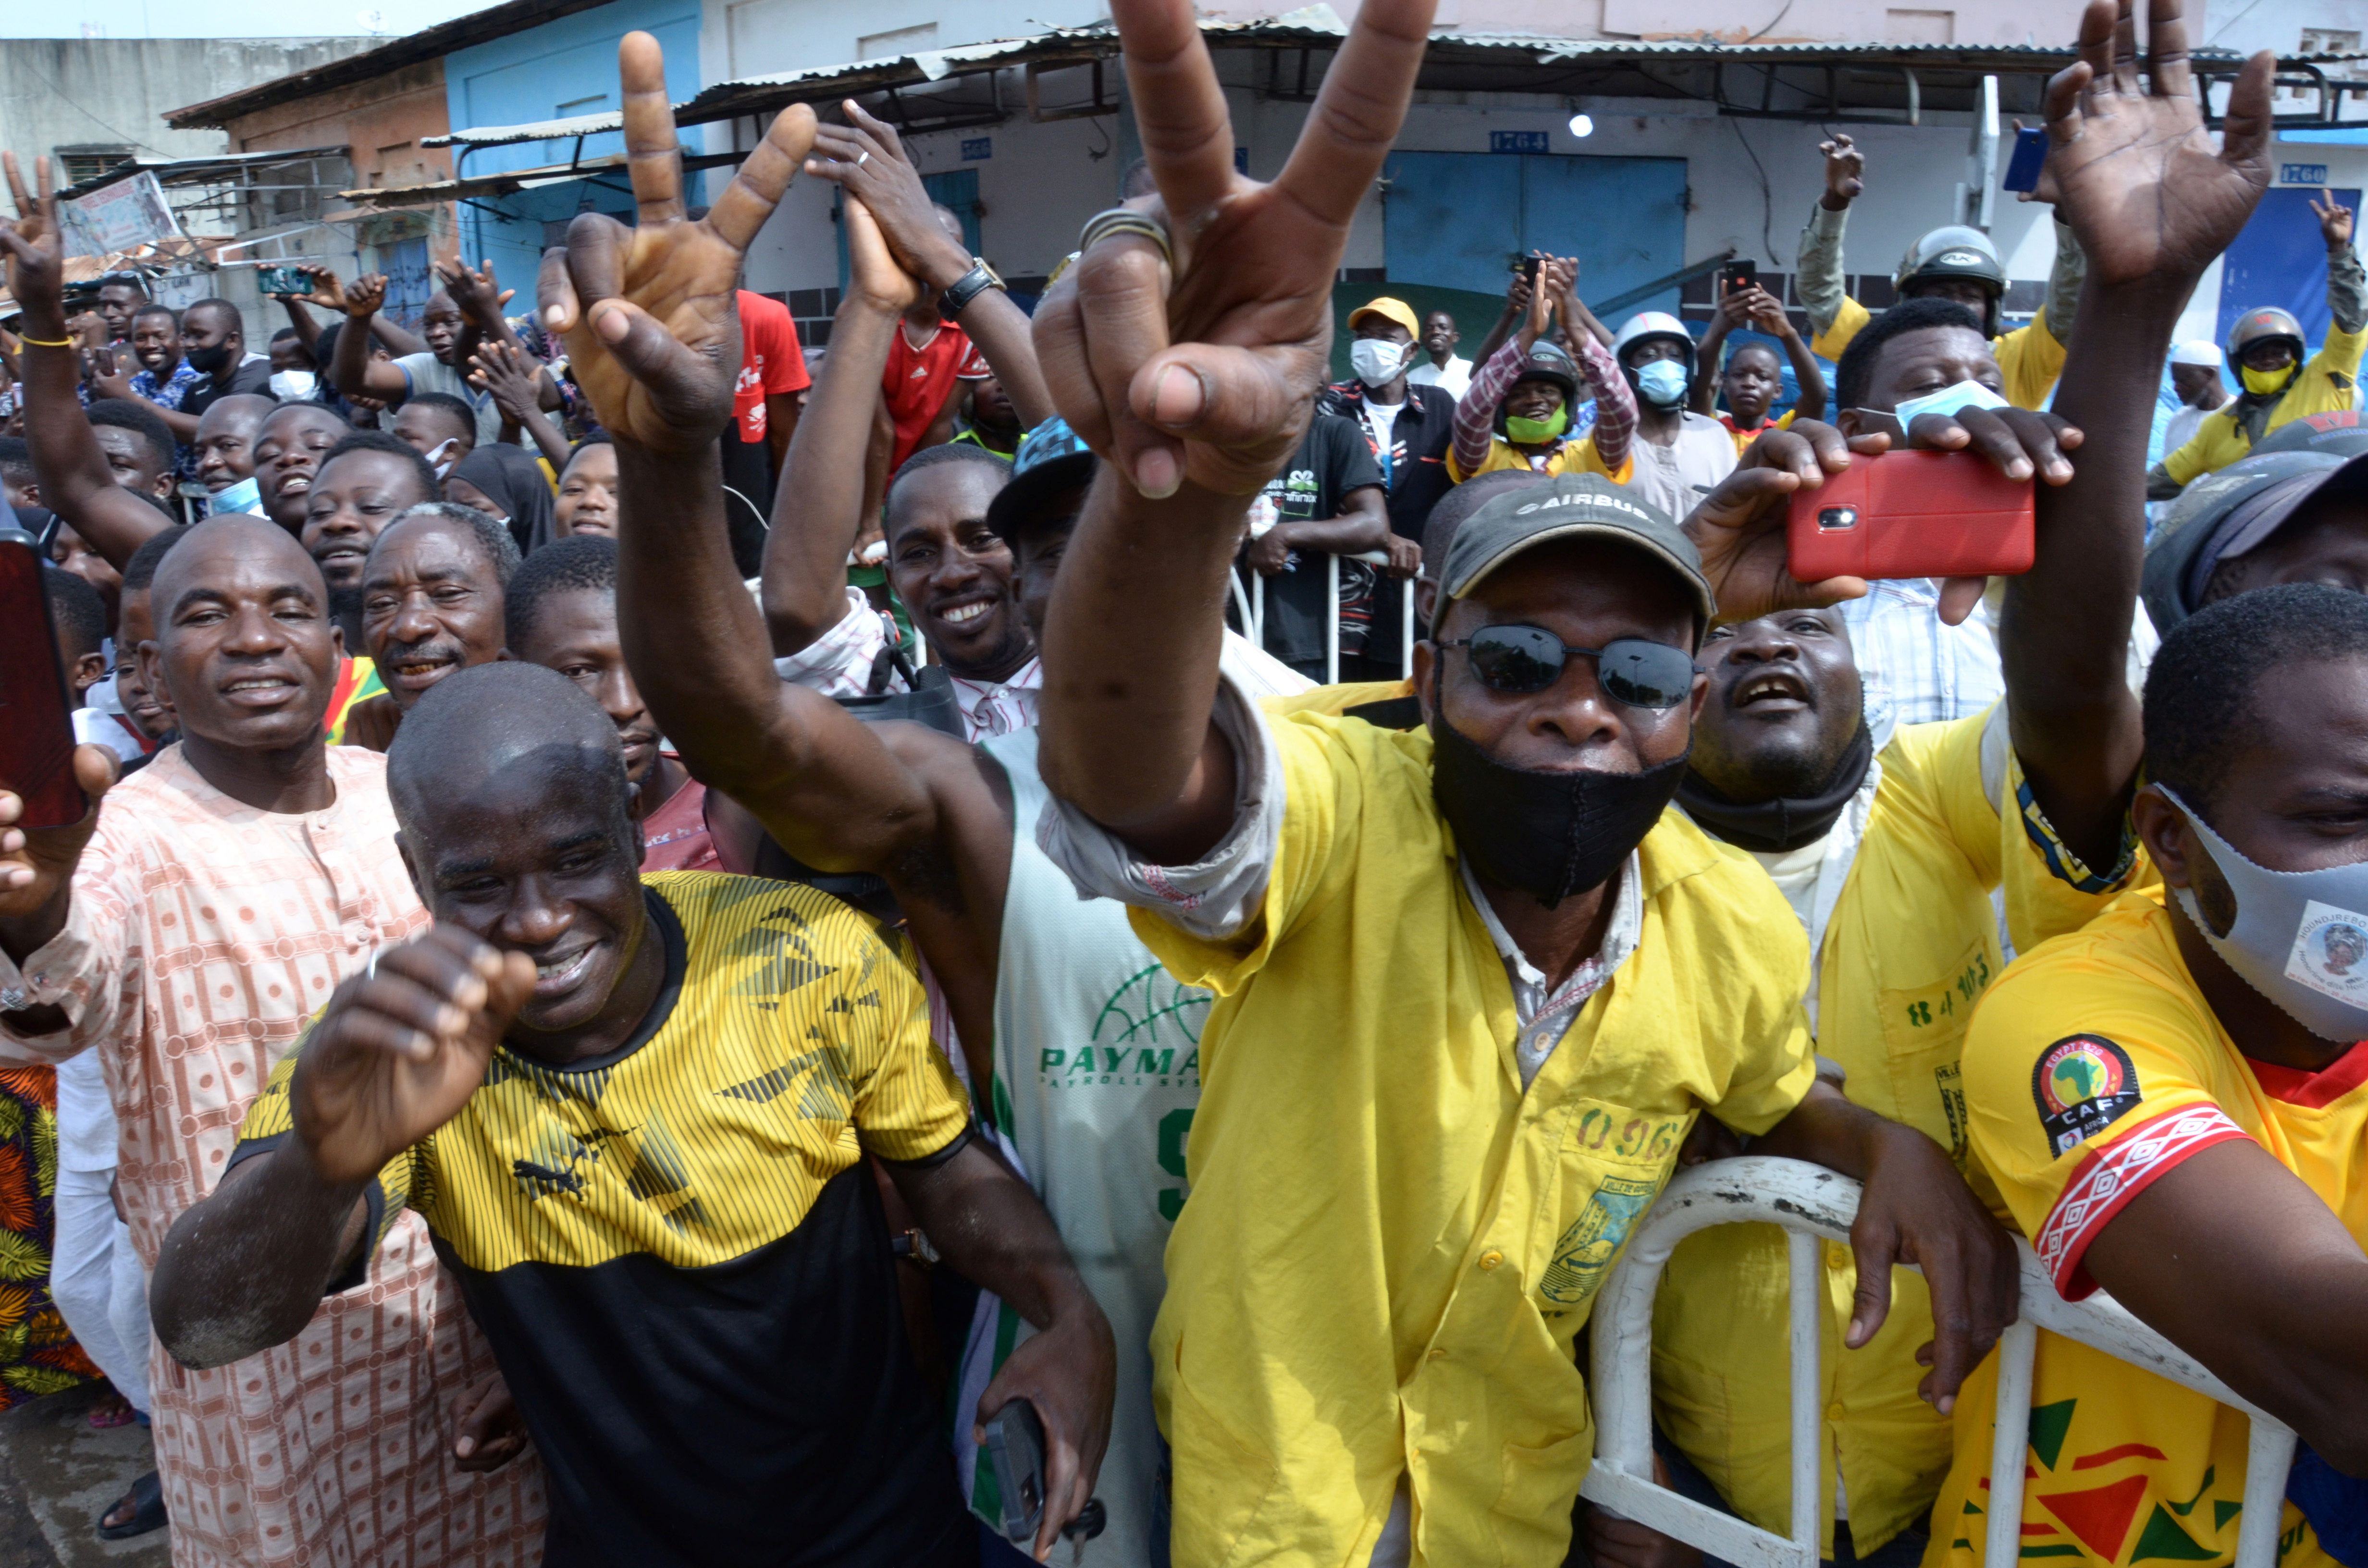 Supporters of Benin's President Patrice Talon gather to cheer him outside a polling station in Cotonou, Benin April 11, 2021. REUTERS/Charle Placide Tossou